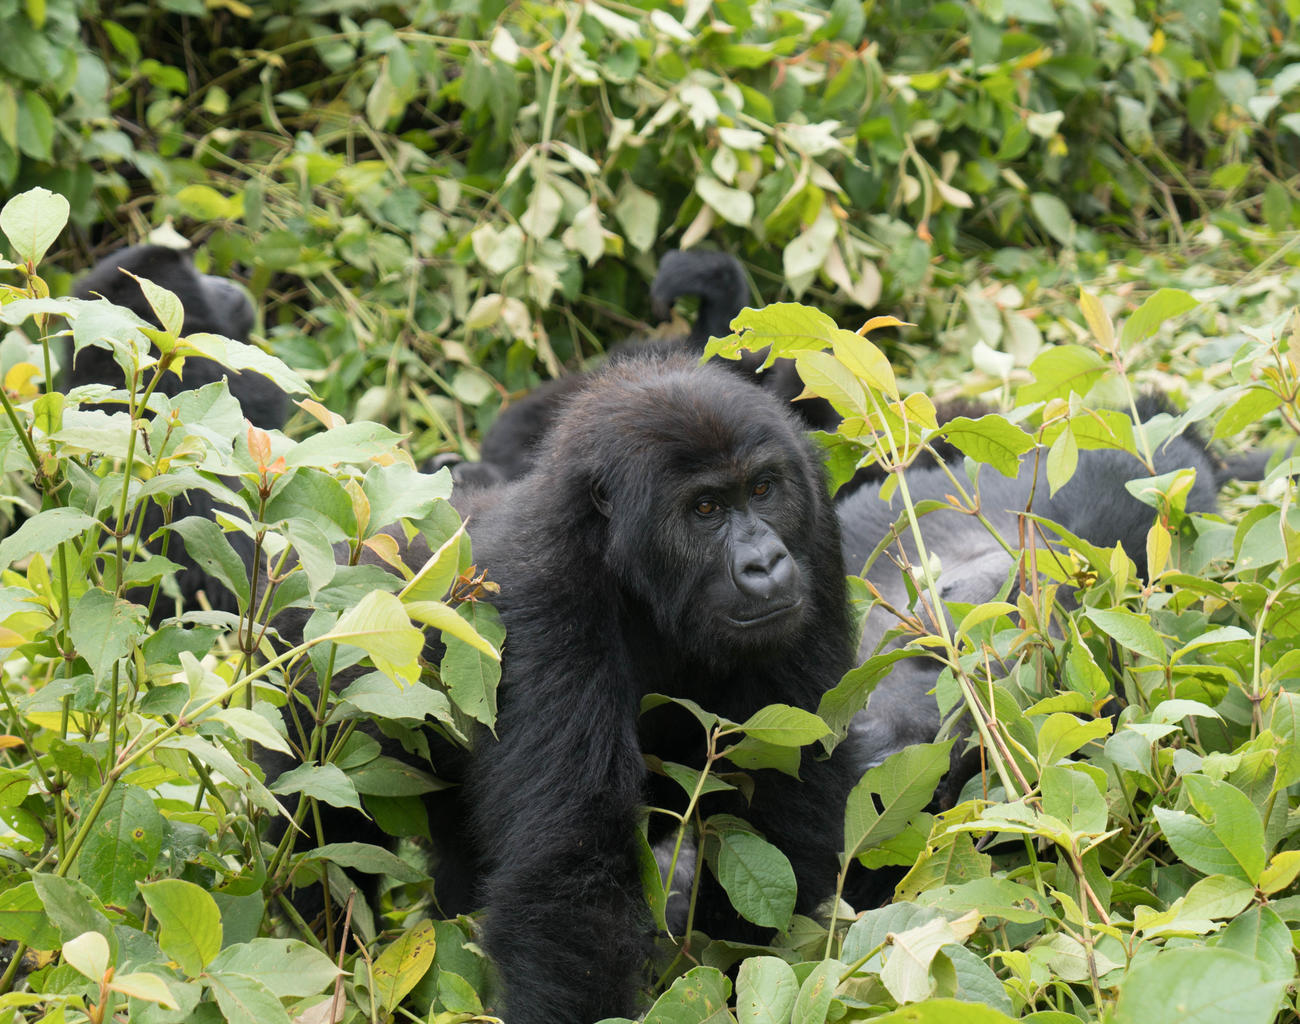 Gorillas in the DRC